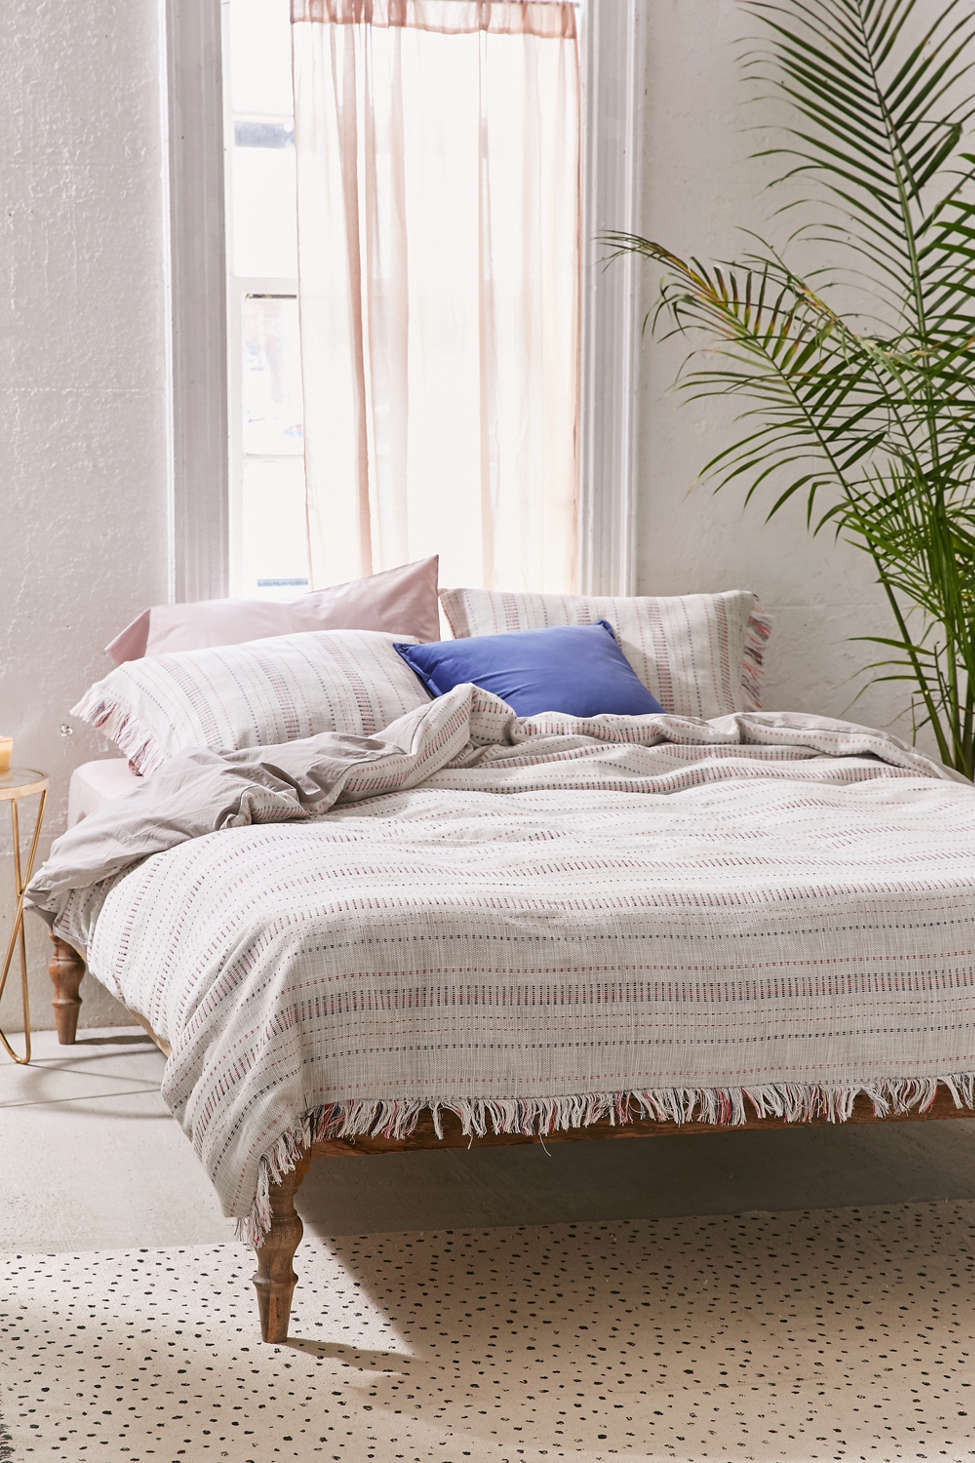 Slide View: 3: Stripe The Dot Duvet Cover